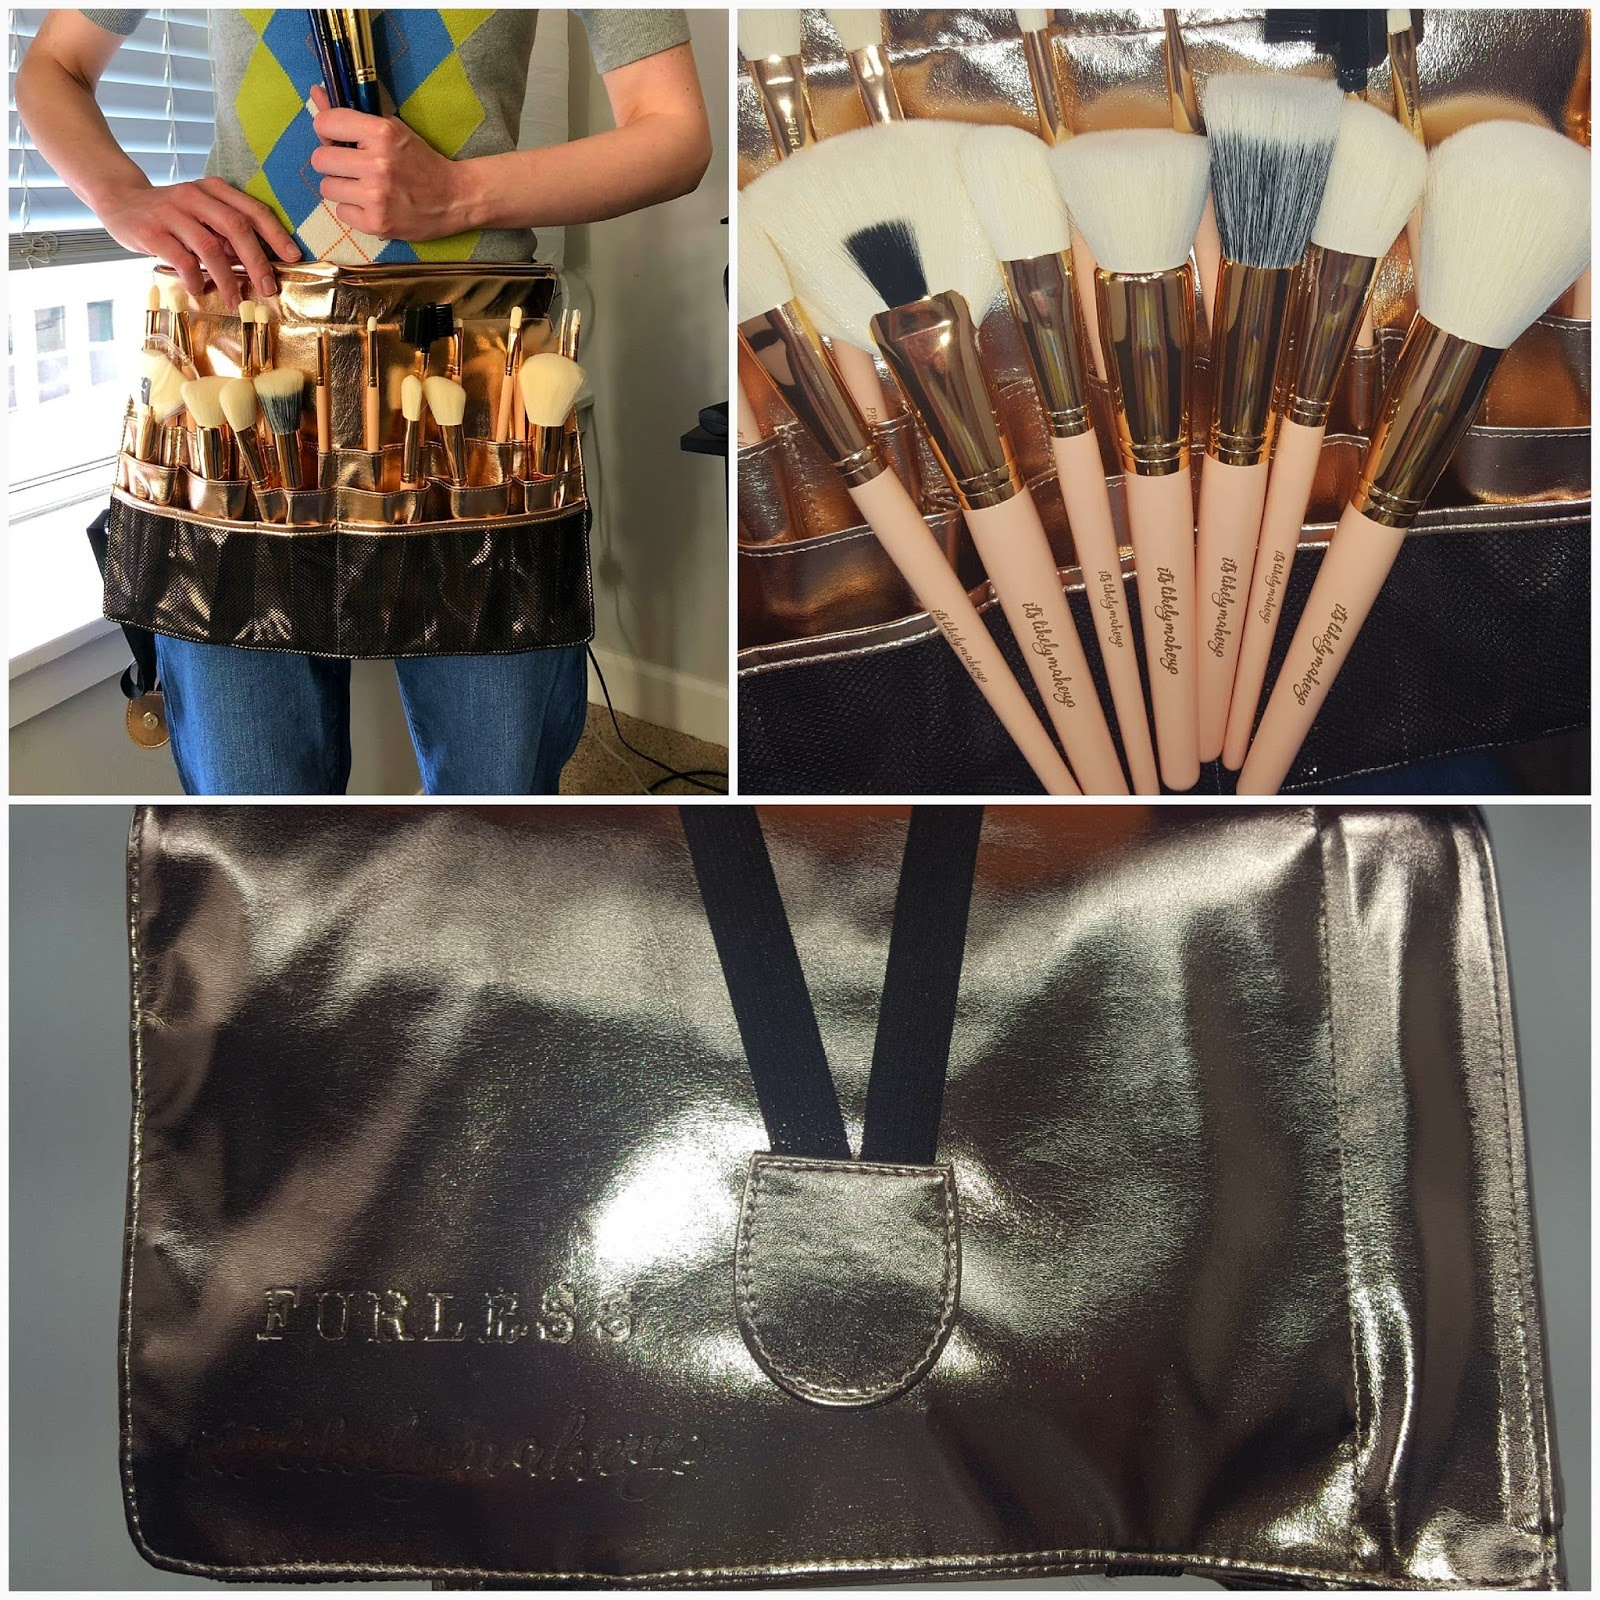 ade71a2121986 Everything You Need to Know About the Itslikelymakeup   Furless Rose Gold  Must Have Pro Makeup Brush Set